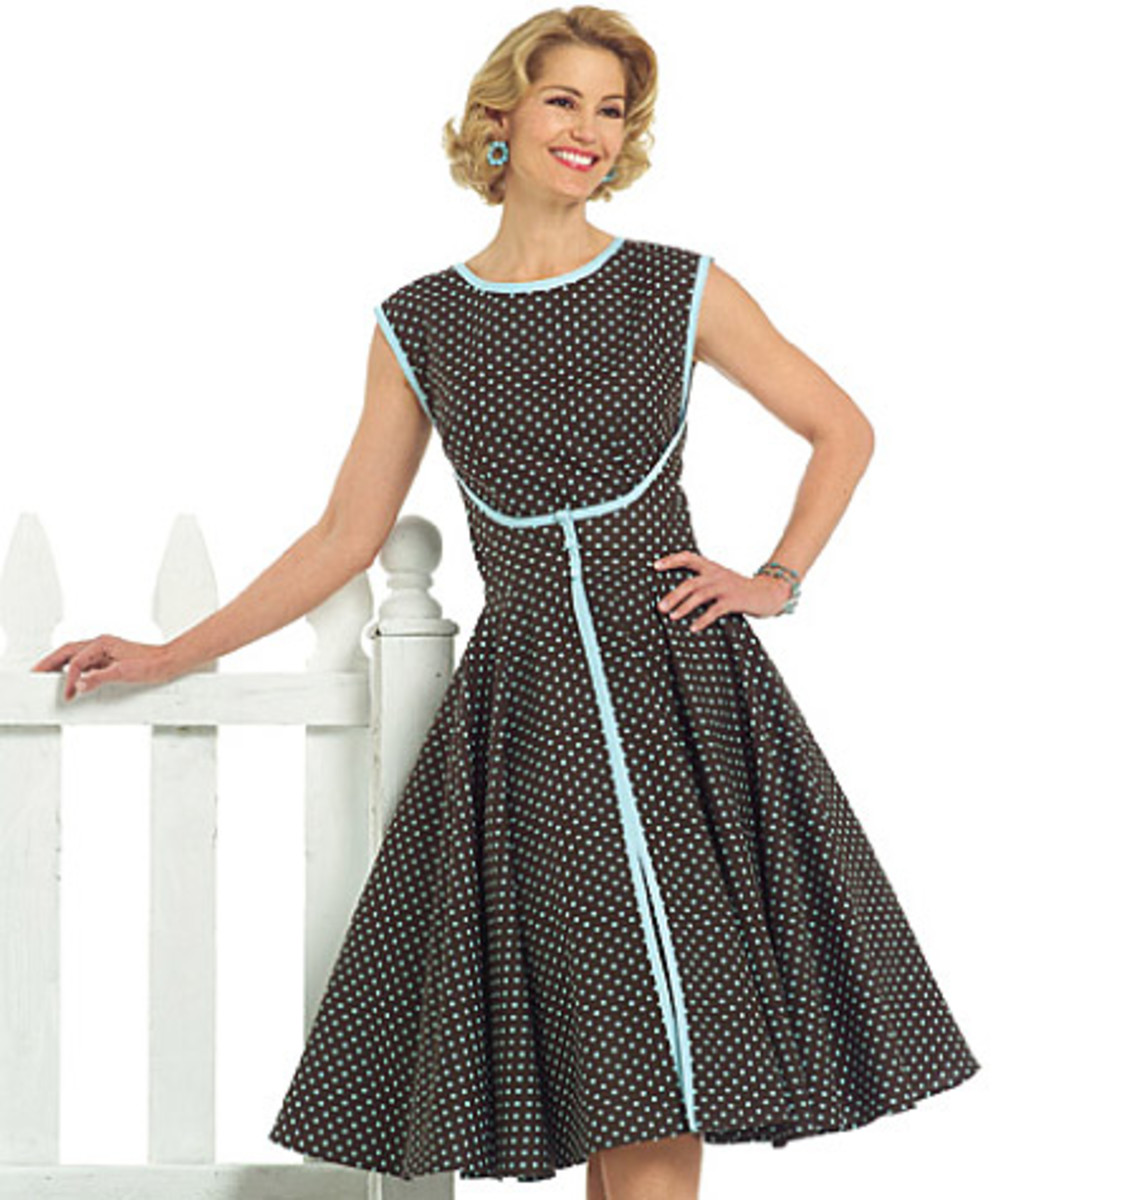 Look for Butterick 4790 if purchasing the modern reprint of the original 6015.